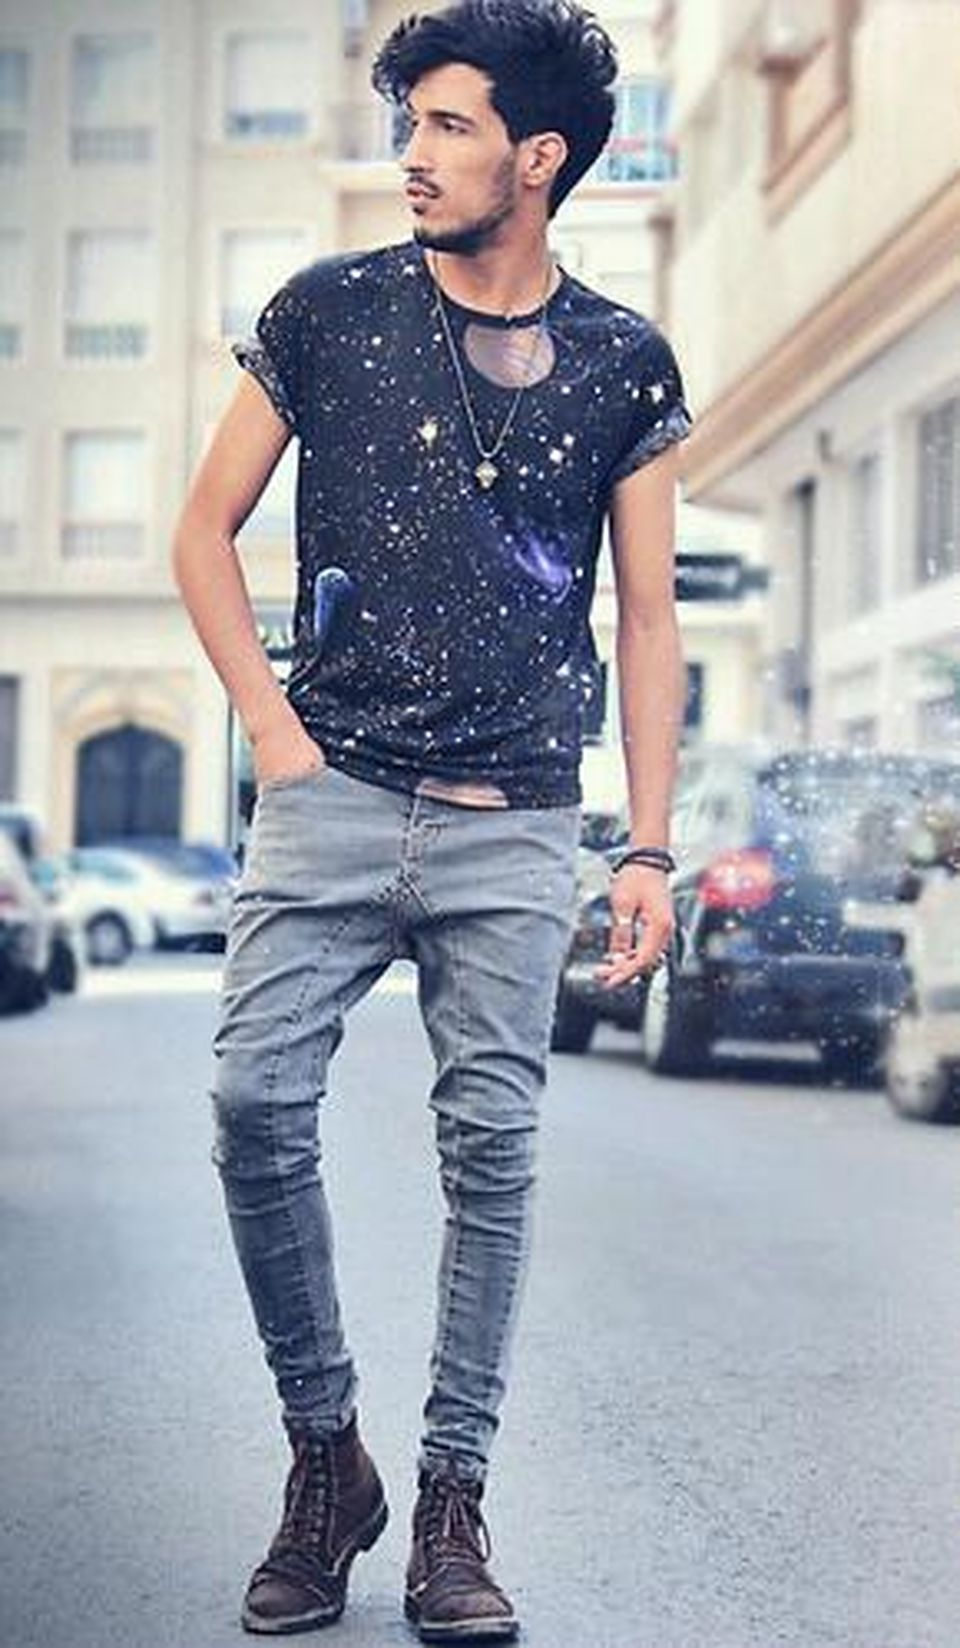 Casual indie mens fashion outfits style 8 fashion best Indie fashion style definition